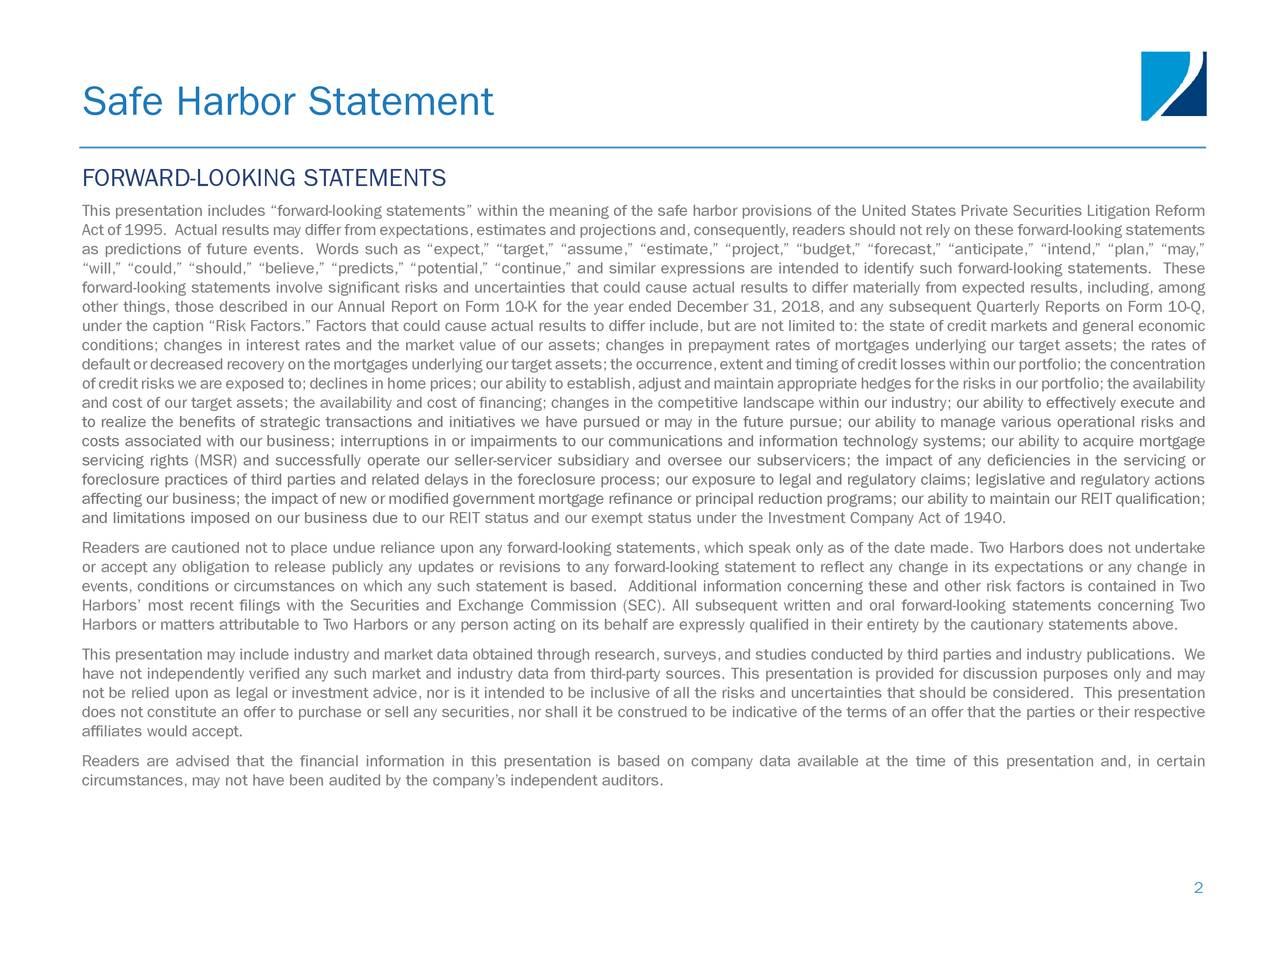 """FORWARD-LOOKING STATEMENTS This presentation includes """"forward-looking statements"""" within the meaning of the safe harbor provisions of the United States Private Securities Litigation Reform Act of 1995. Actual results may differ from expectations,estimates and projections and,consequently,readers should not rely on these forward-looking statements as predictions of future events. Words such as """"expect,"""" """"target,"""" """"assume,"""" """"estimate,"""" """"project,"""" """"budget,"""" """"forecast,"""" """"anticipate,"""" """"intend,"""" """"plan,"""" """"may,"""" """"will,"""" """"could,"""" """"should,"""" """"believe,"""" """"predicts,"""" """"potential,"""" """"continue,"""" and similar expressions are intended to identify such forward-looking statements. These forward-looking statements involve significant risks and uncertainties that could cause actual results to differ materially from expected results, including, among other things, those described in our Annual Report on Form 10-K for the year ended December 31, 2018, and any subsequent Quarterly Reports on Form 10-Q, under the caption """"Risk Factors."""" Factors that could cause actual results to differ include, but are not limited to: the state of credit markets and general economic conditions; changes in interest rates and the market value of our assets; changes in prepayment rates of mortgages underlying our target assets; the rates of defaultordecreasedrecoveryonthemortgagesunderlyingourtargetassets;theoccurrence,extentandtimingofcreditlosseswithinourportfolio;theconcentration of credit risks we are exposed to; declines in home prices; our ability to establish,adjust and maintain appropriate hedges for the risks in our portfolio; the availability and cost of our target assets; the availability and cost of financing; changes in the competitive landscape within our industry; our ability to effectively execute and to realize the benefits of strategic transactions and initiatives we have pursued or may in the future pursue; our ability to manage various operational risks and costs associated with our business; """